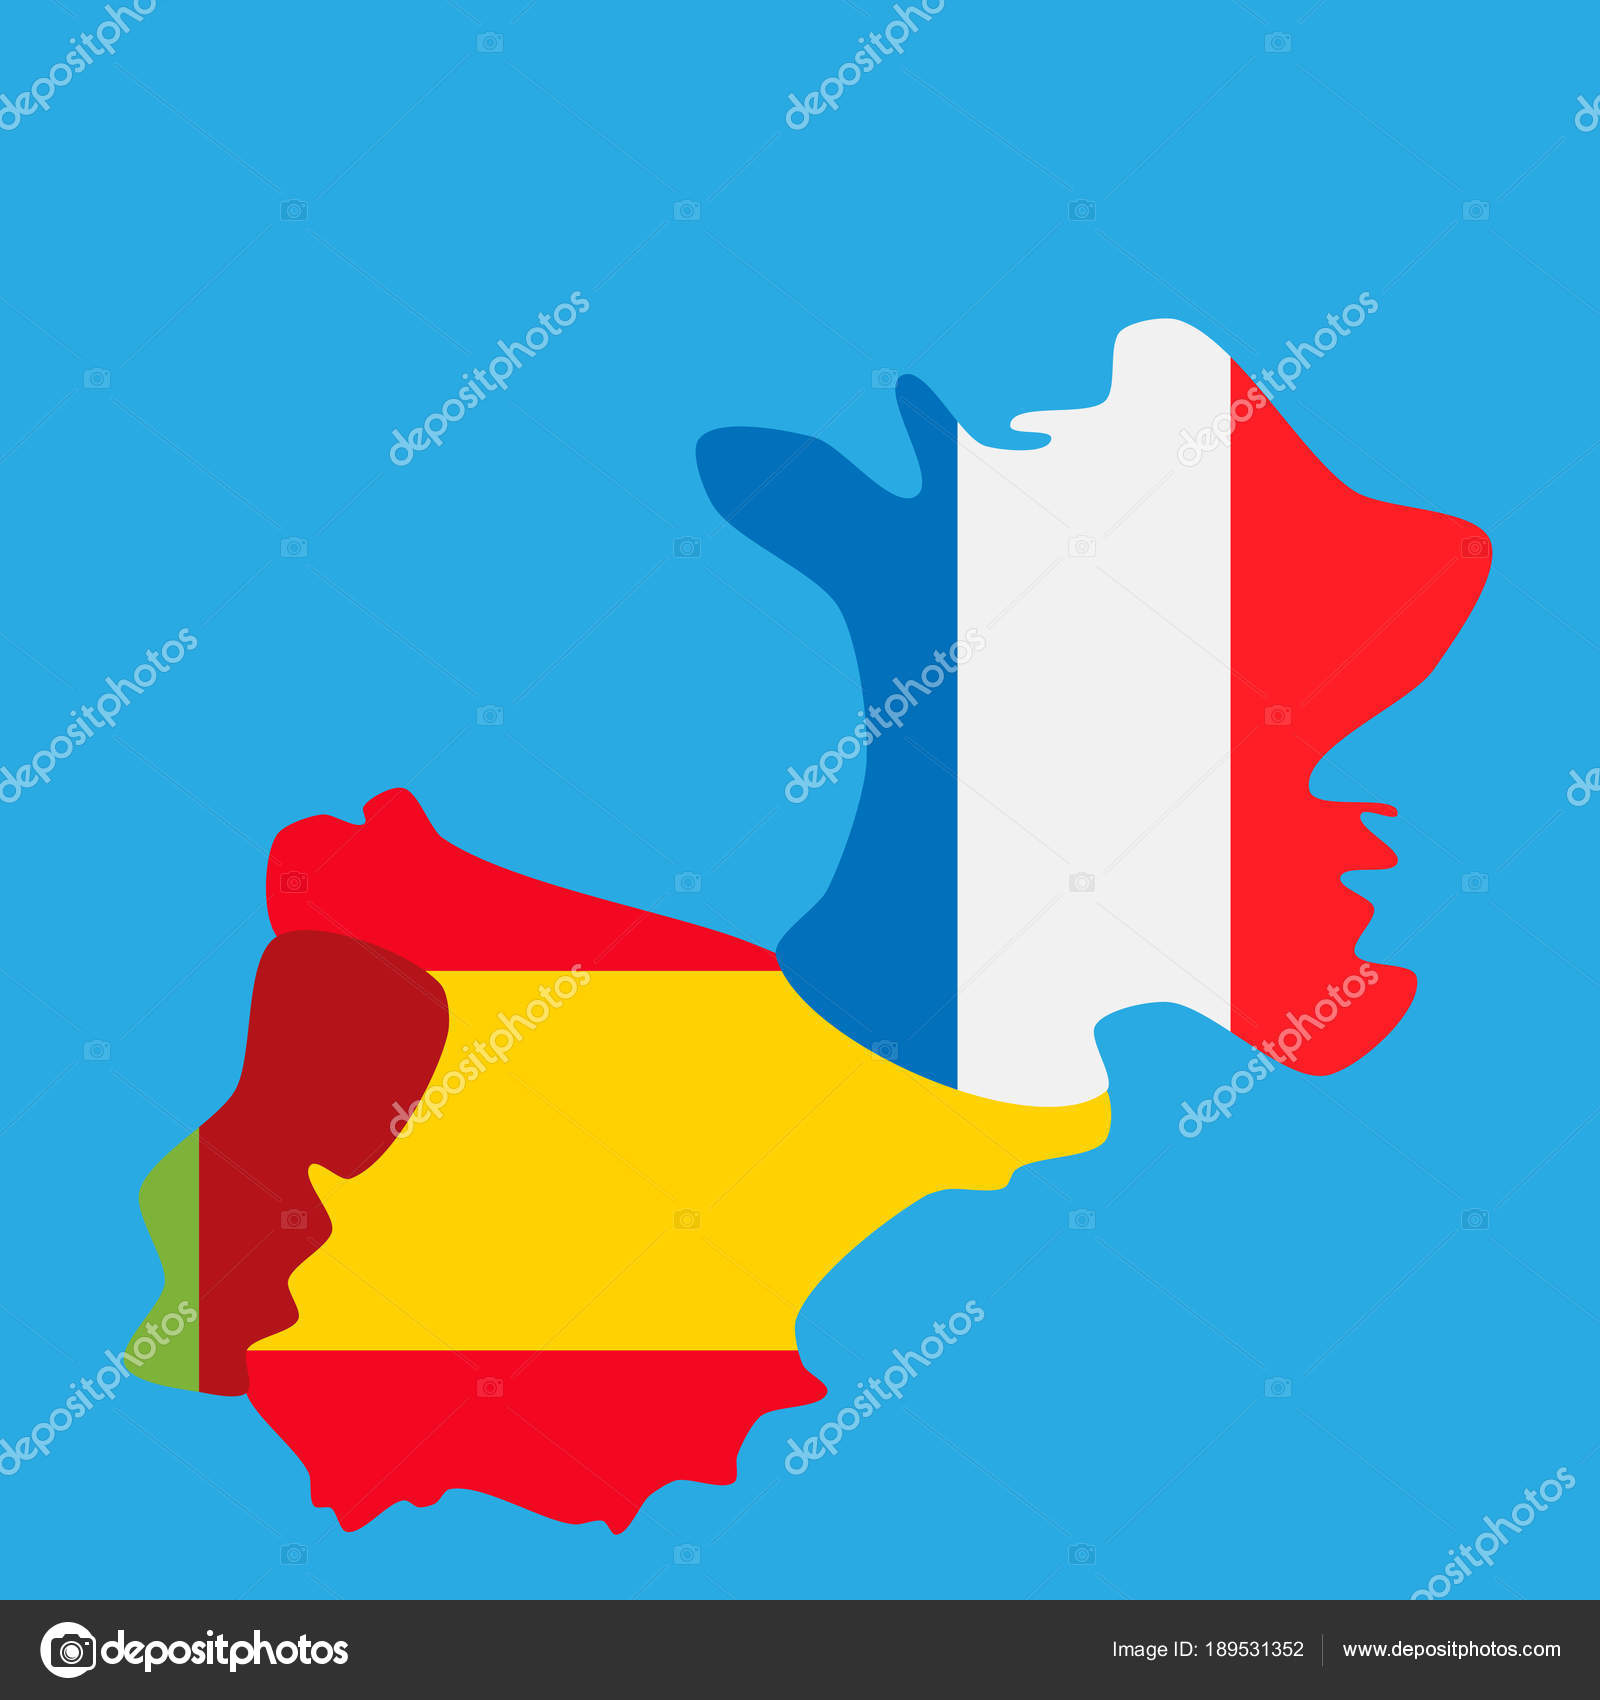 Map Of Portugal Spain France.Map Of Portugal Spain And France With National Flags Stock Vector